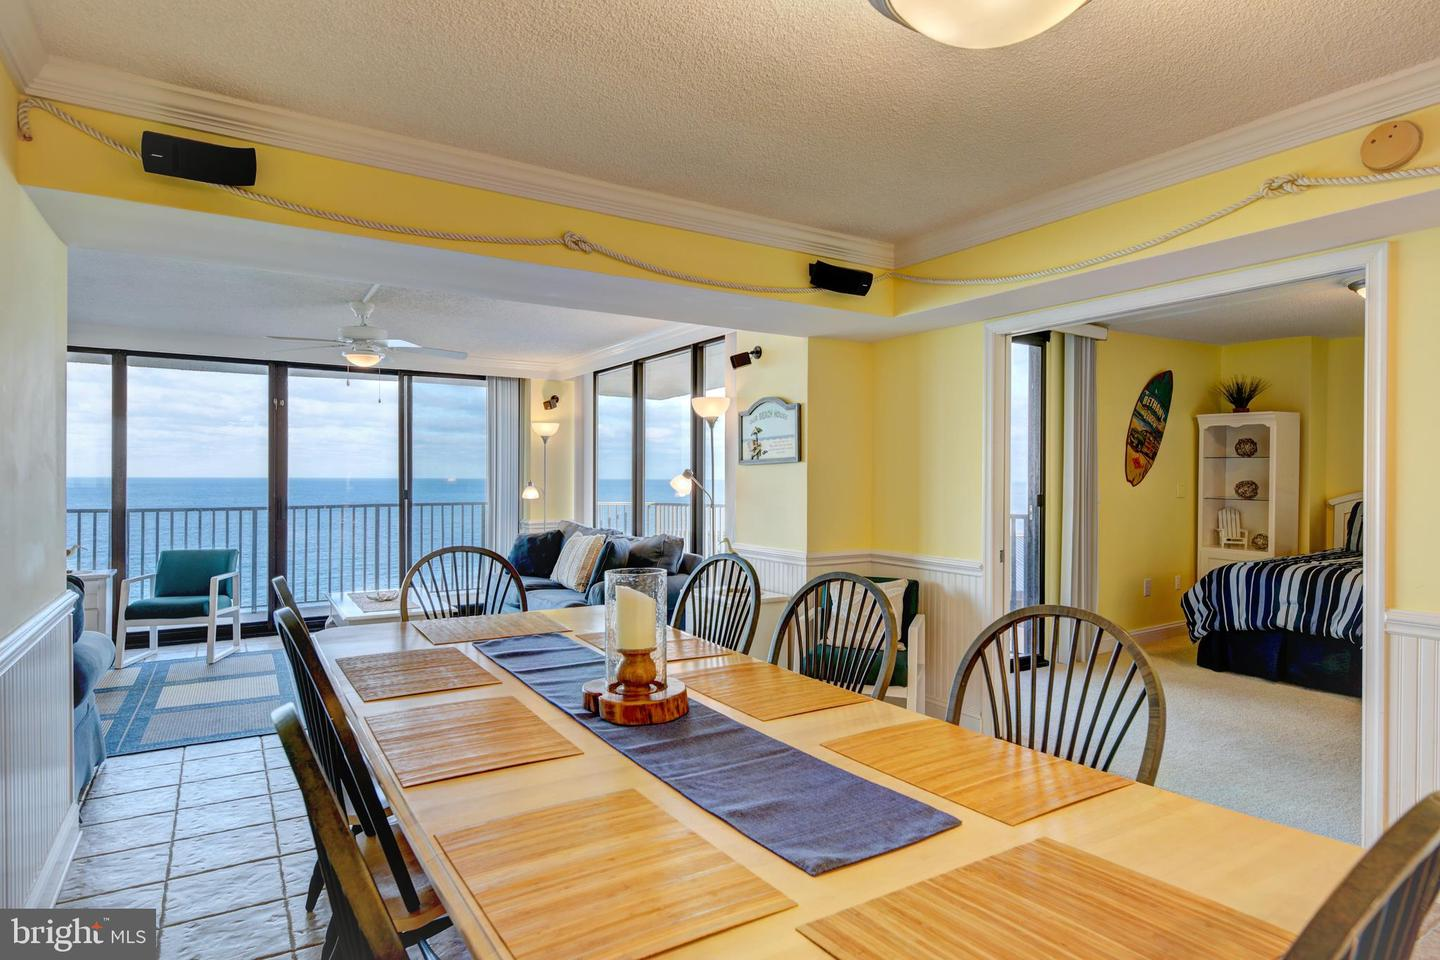 DESU152792-302186530289-2019-12-16-14-23-17 1206 S Edgewater House Rd #1206s | Bethany Beach, De Real Estate For Sale | MLS# Desu152792  - Suzanne Macnab